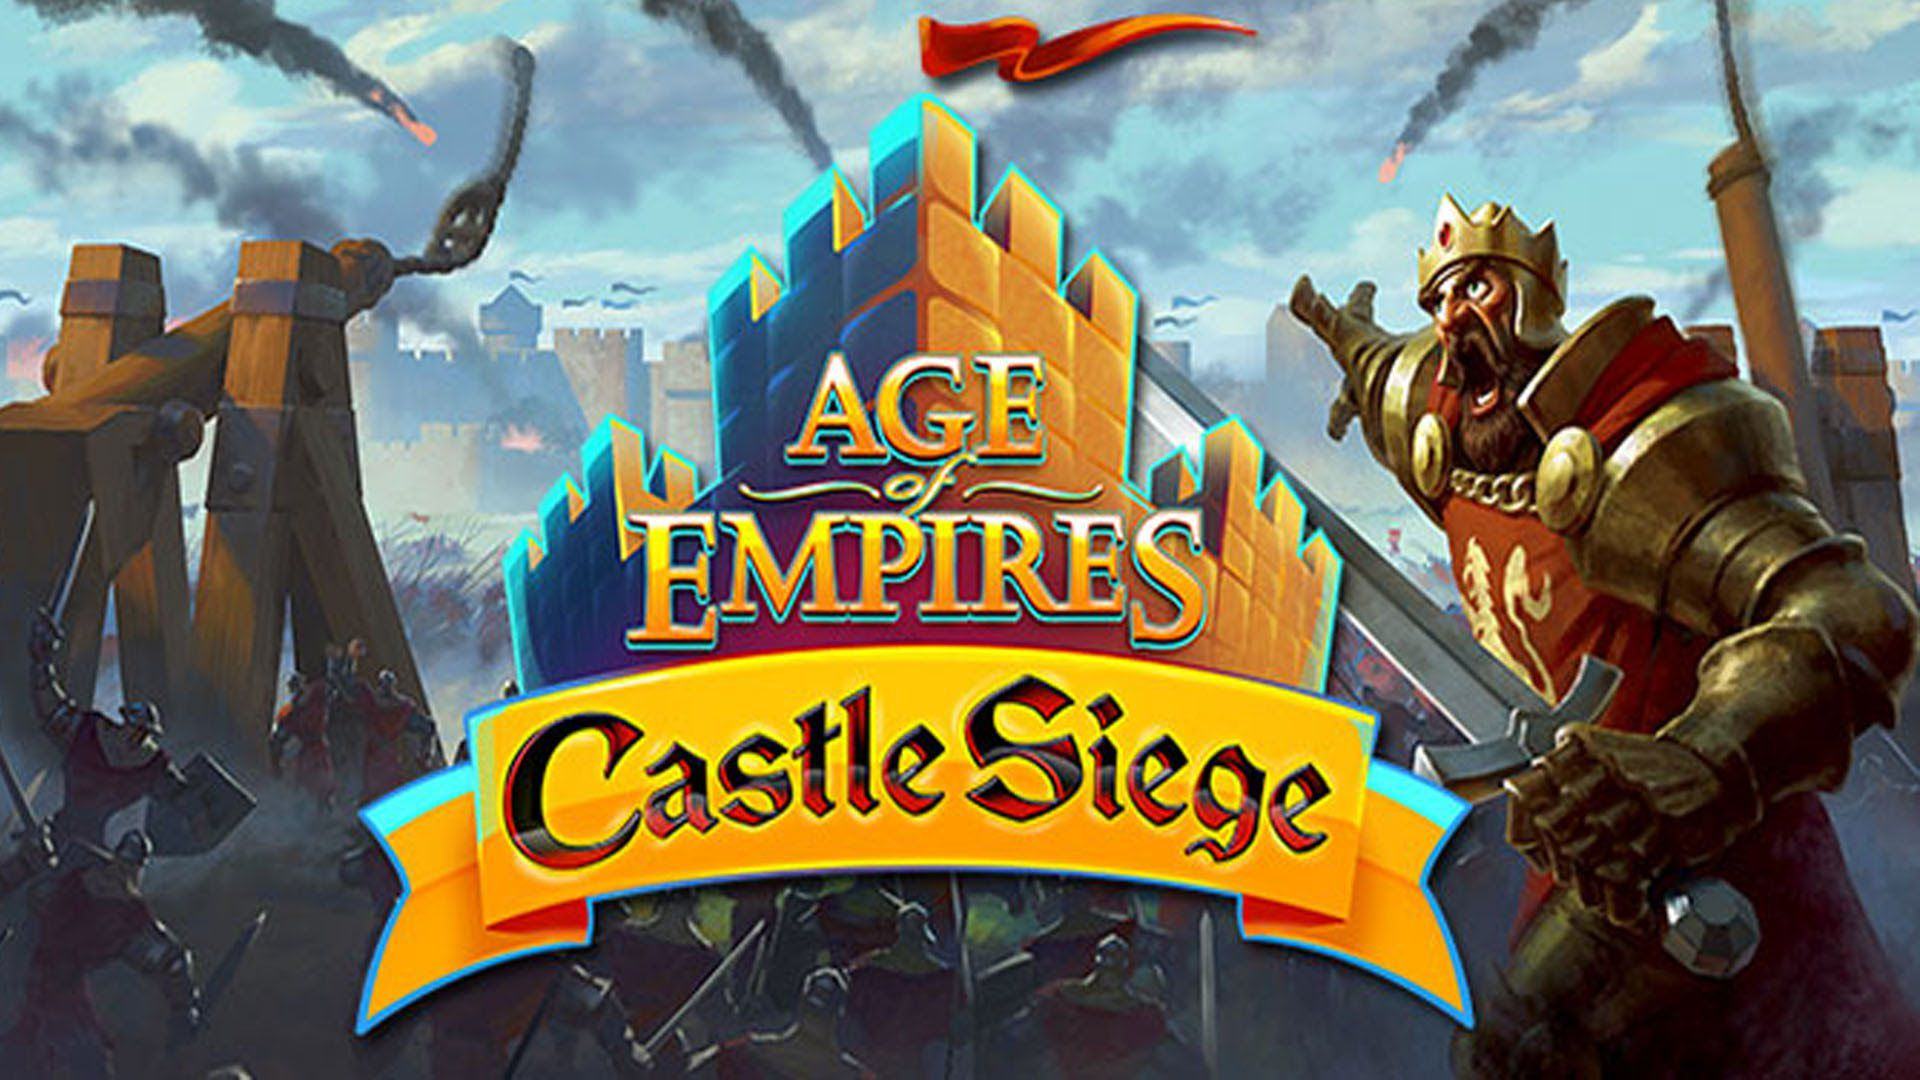 Age of empires 3 on windows 10 Download + Crack Latest Version